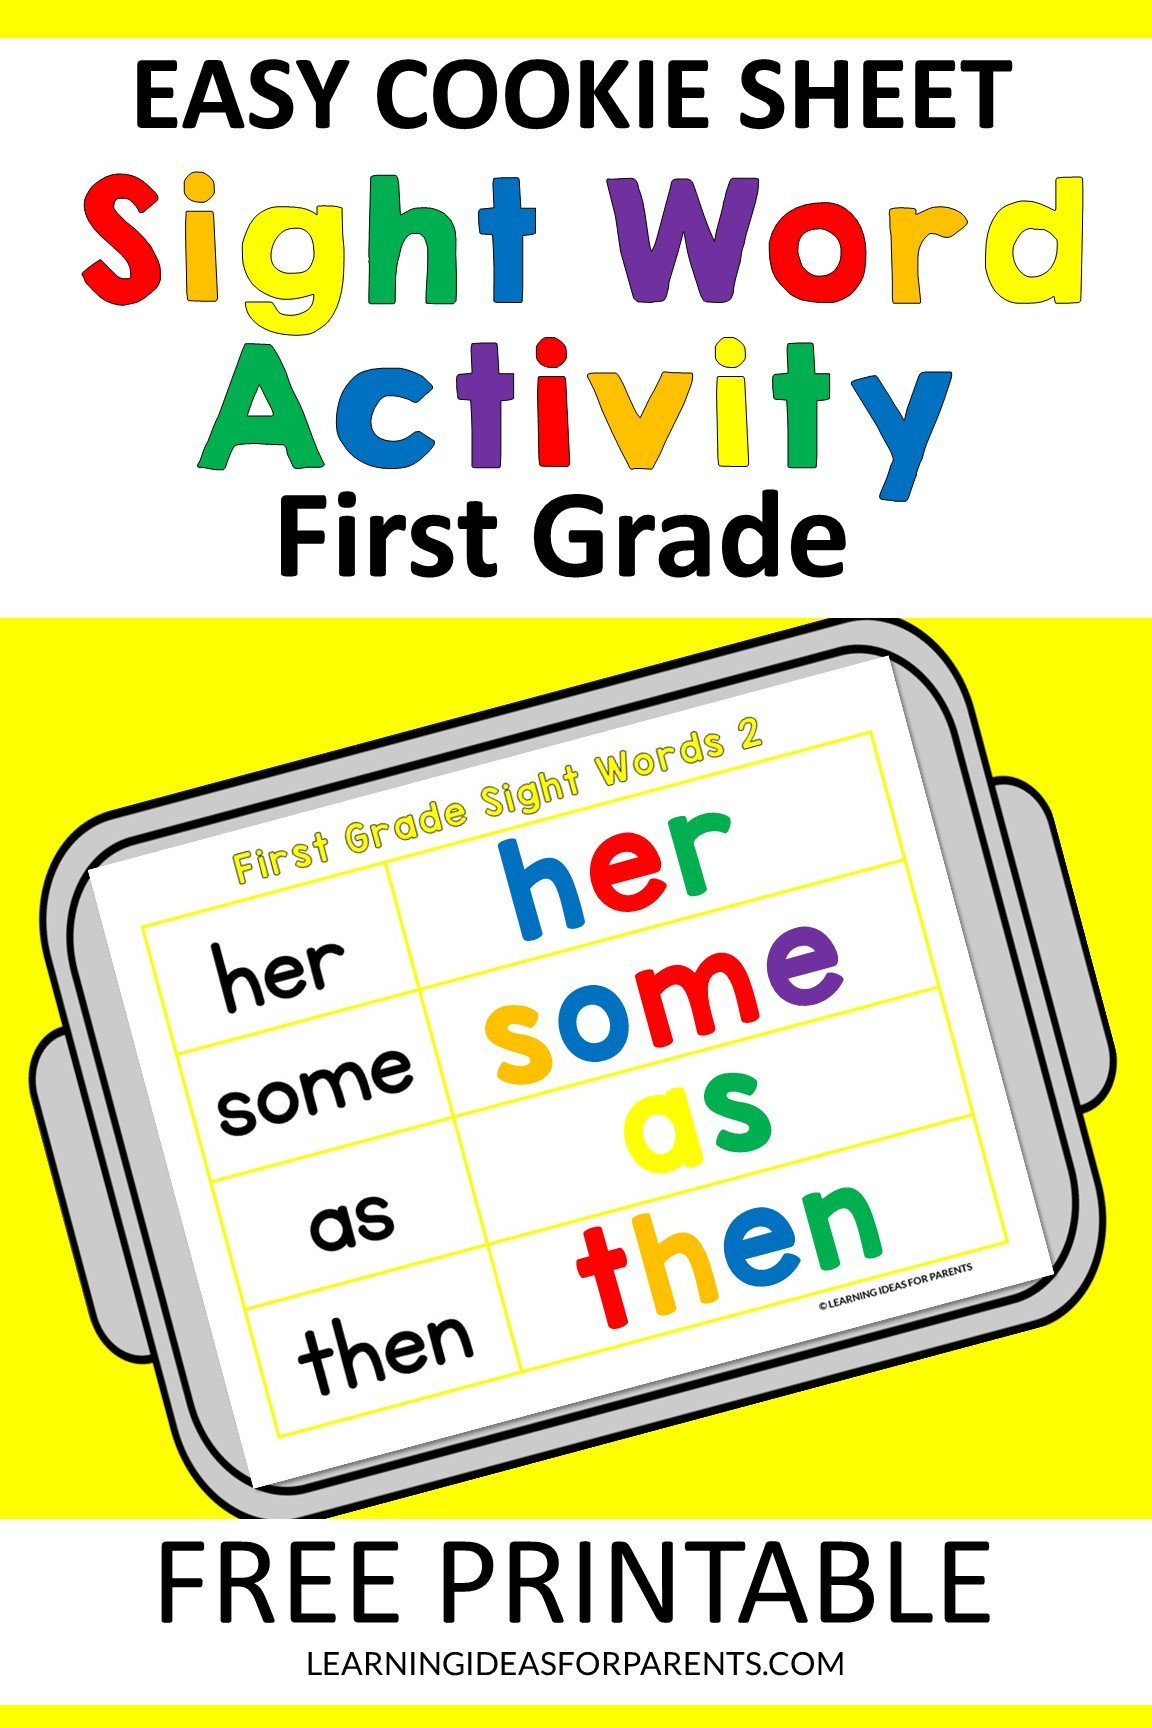 Free printable easy cookie sheet first grade sight word activity.